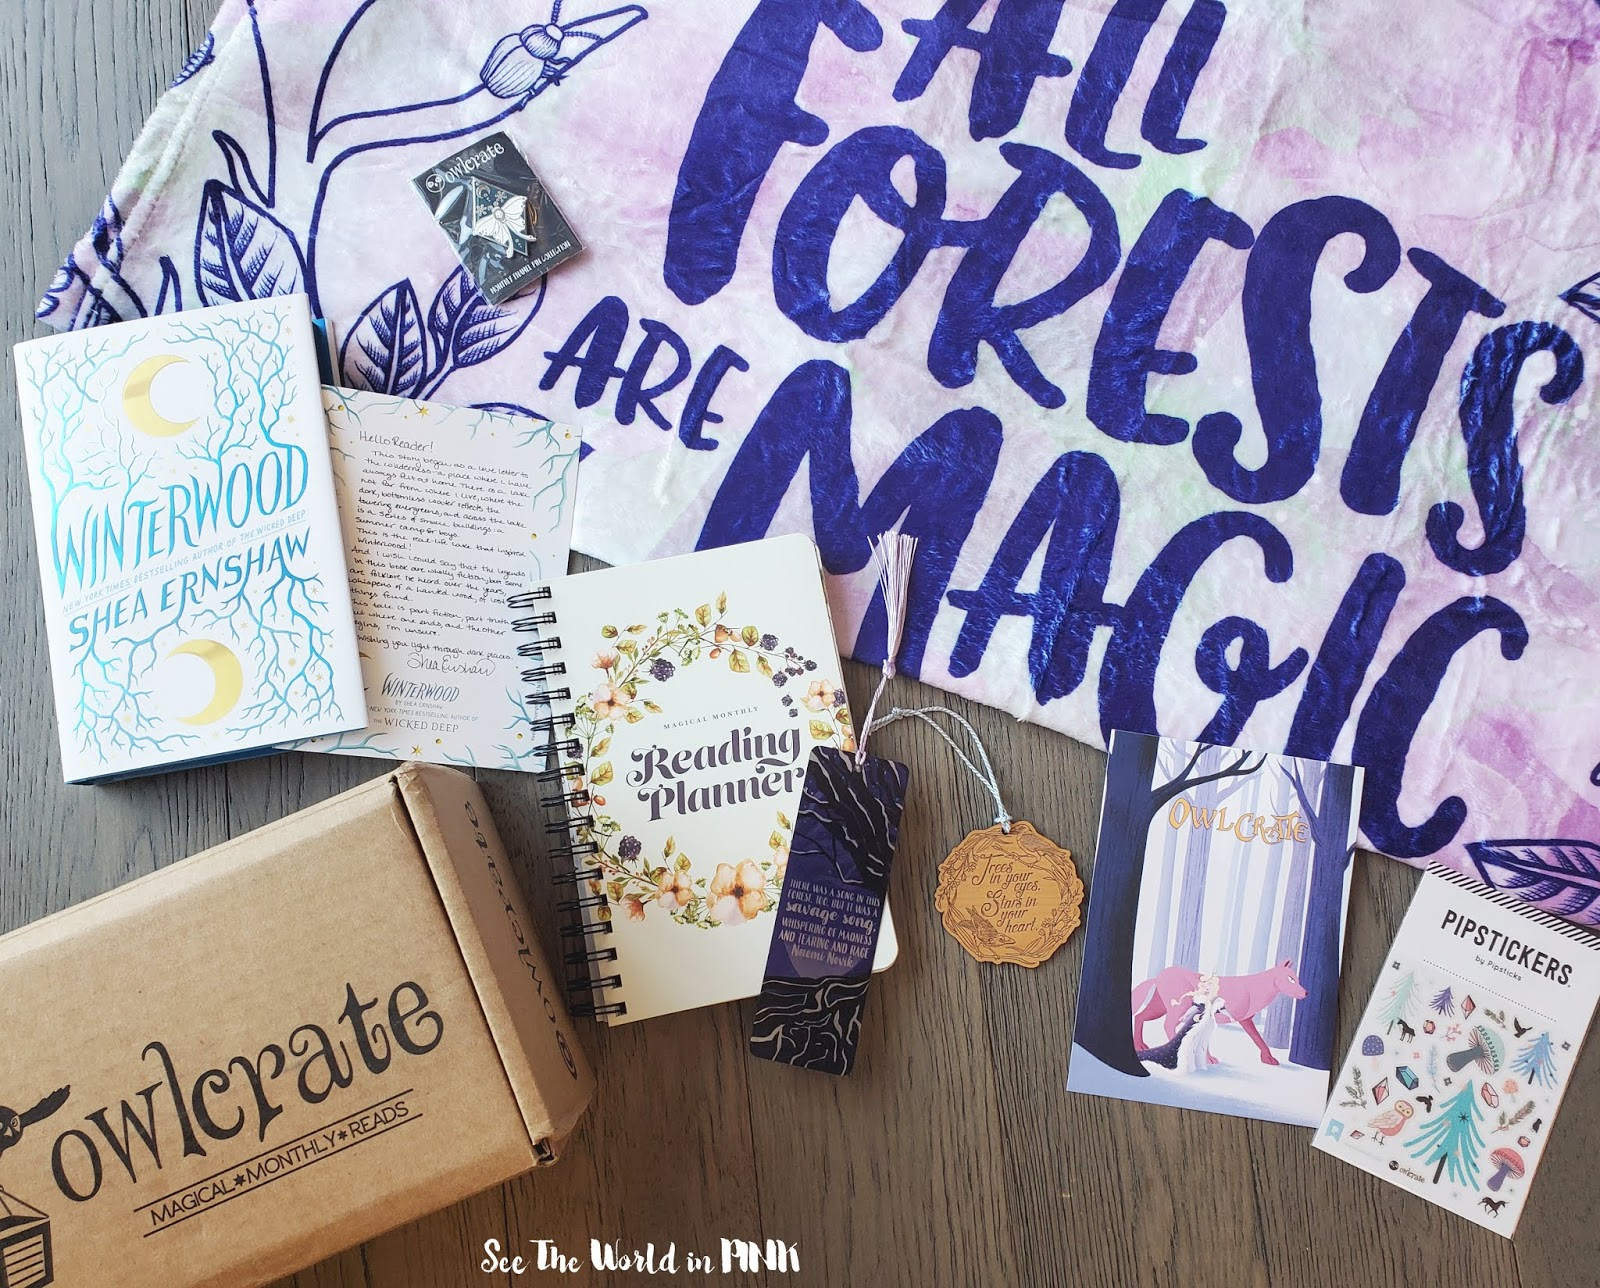 November 2019 Owlcrate